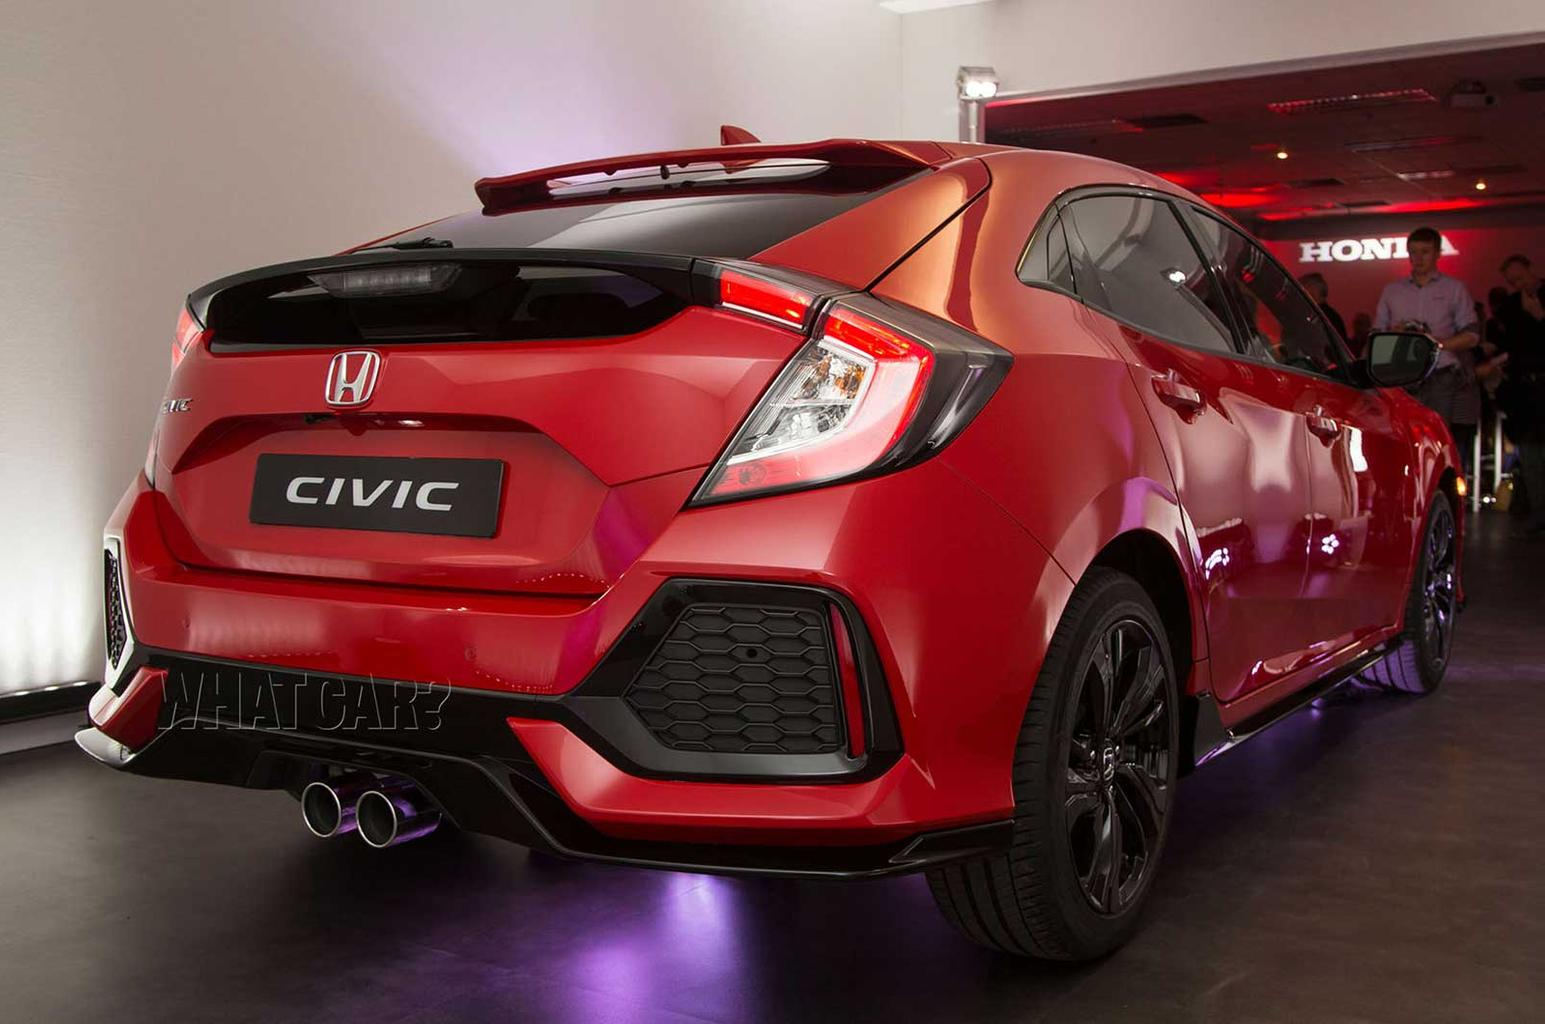 2017 Honda Civic revealed - everything you need to know